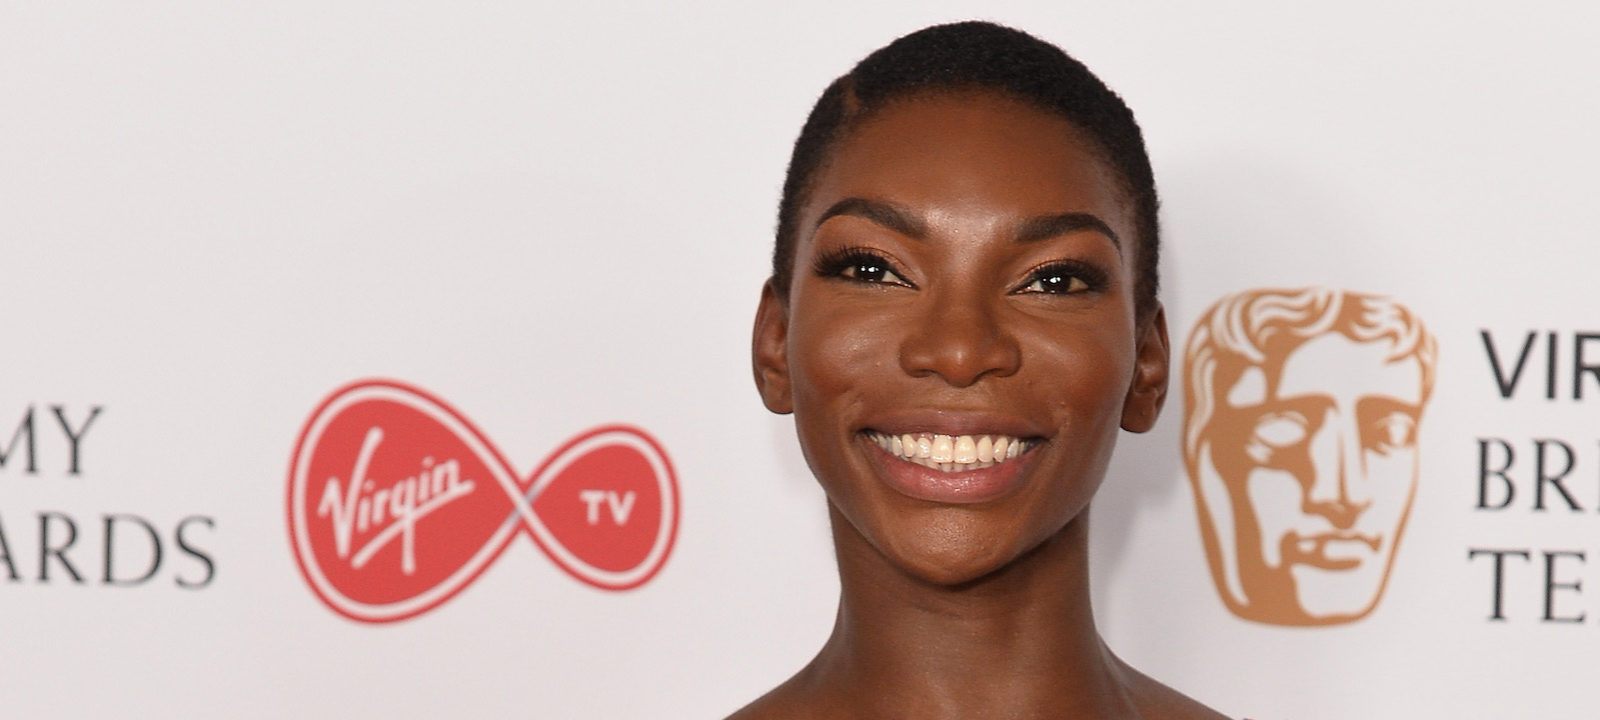 Michaela Coel poses in the Winner's room at the Virgin TV BAFTA Television Awards at The Royal Festival Hall on May 14, 2017 in London, England.